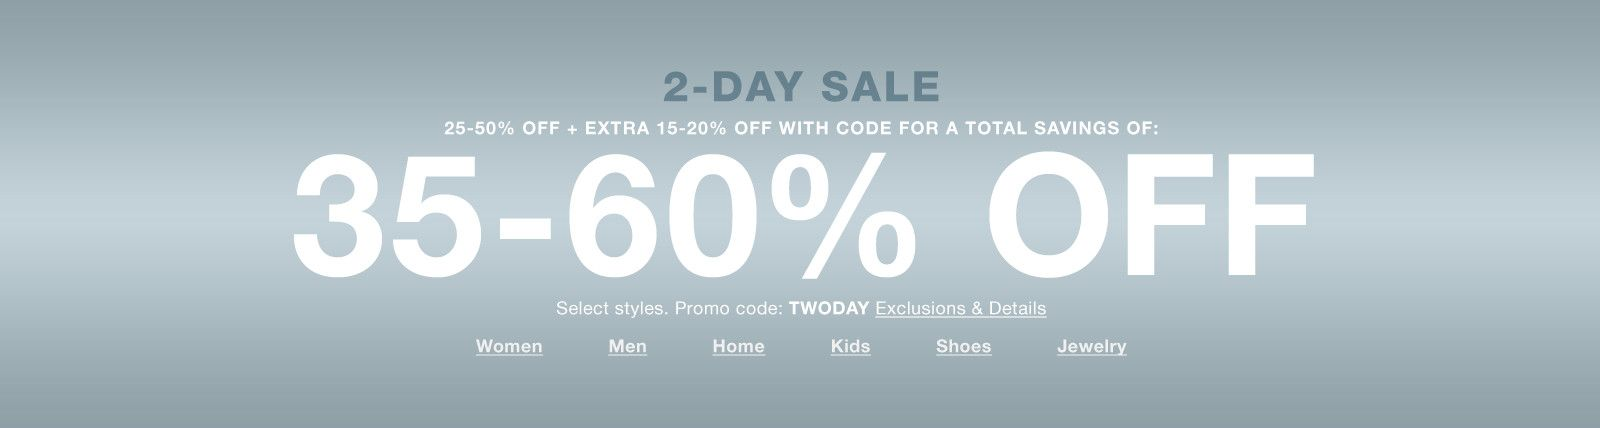 2-Day Sale, 25-50% Off + Extra 15-20% Off With Code for a Total Savings of, 35-60% Off, Select styles, Promo code: TWODAY Exclusions and Details, Women, Men, Home, Kids, Shoes, Jewelry